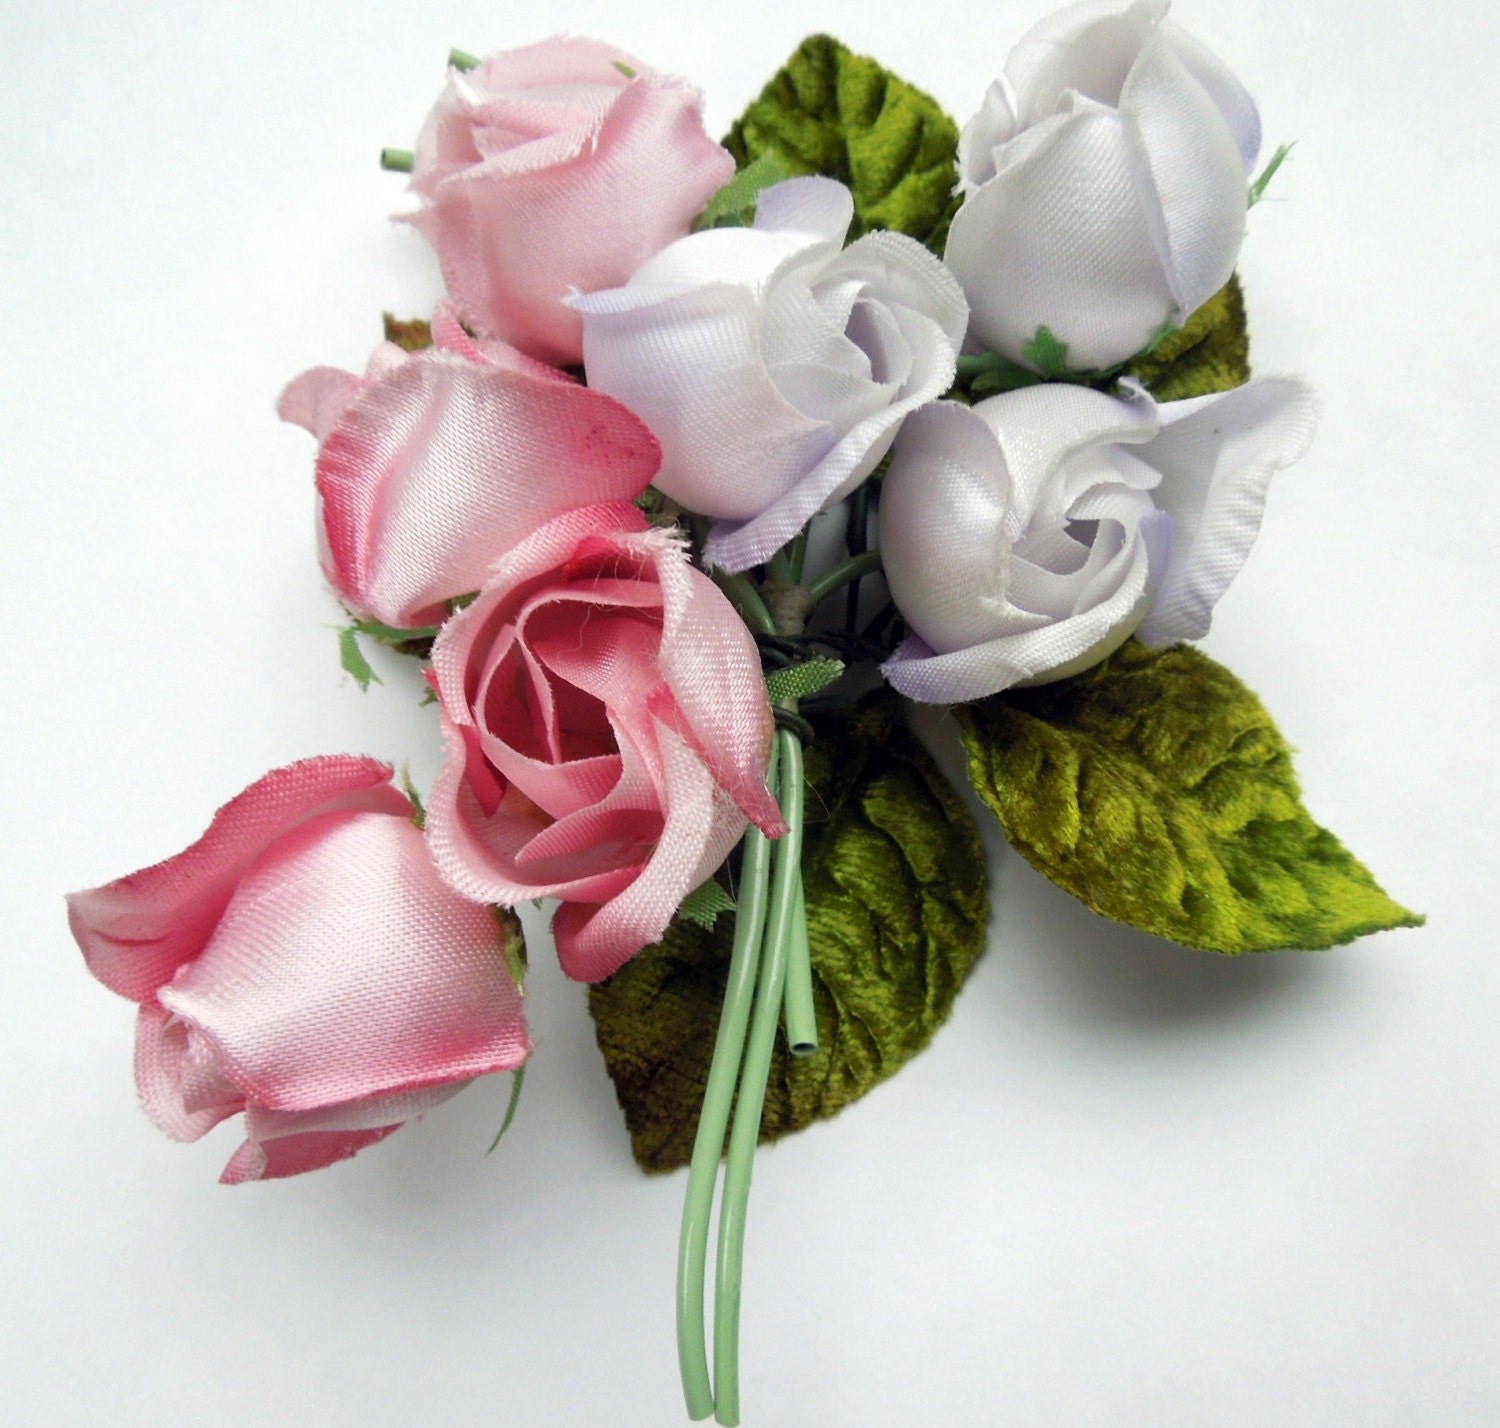 Expensive Birthday Flowers: Vintage Millinery Silk Flower Bouquet Pink White Roses Craft